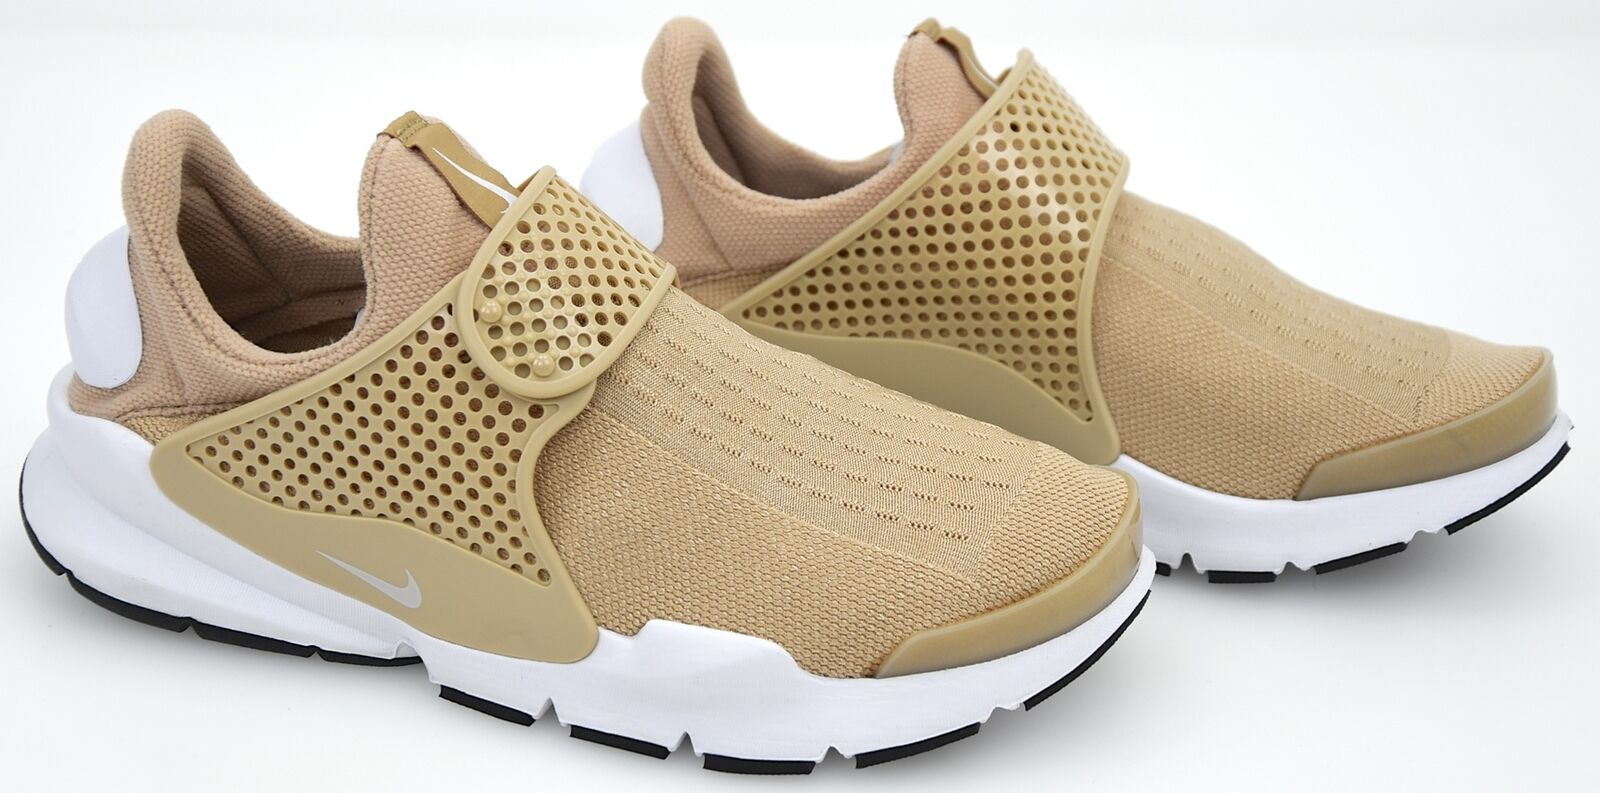 NIKE Homme SNEAKER Chaussures CASUAL FREE TIME CODE 84842018 2018 SOCK DART